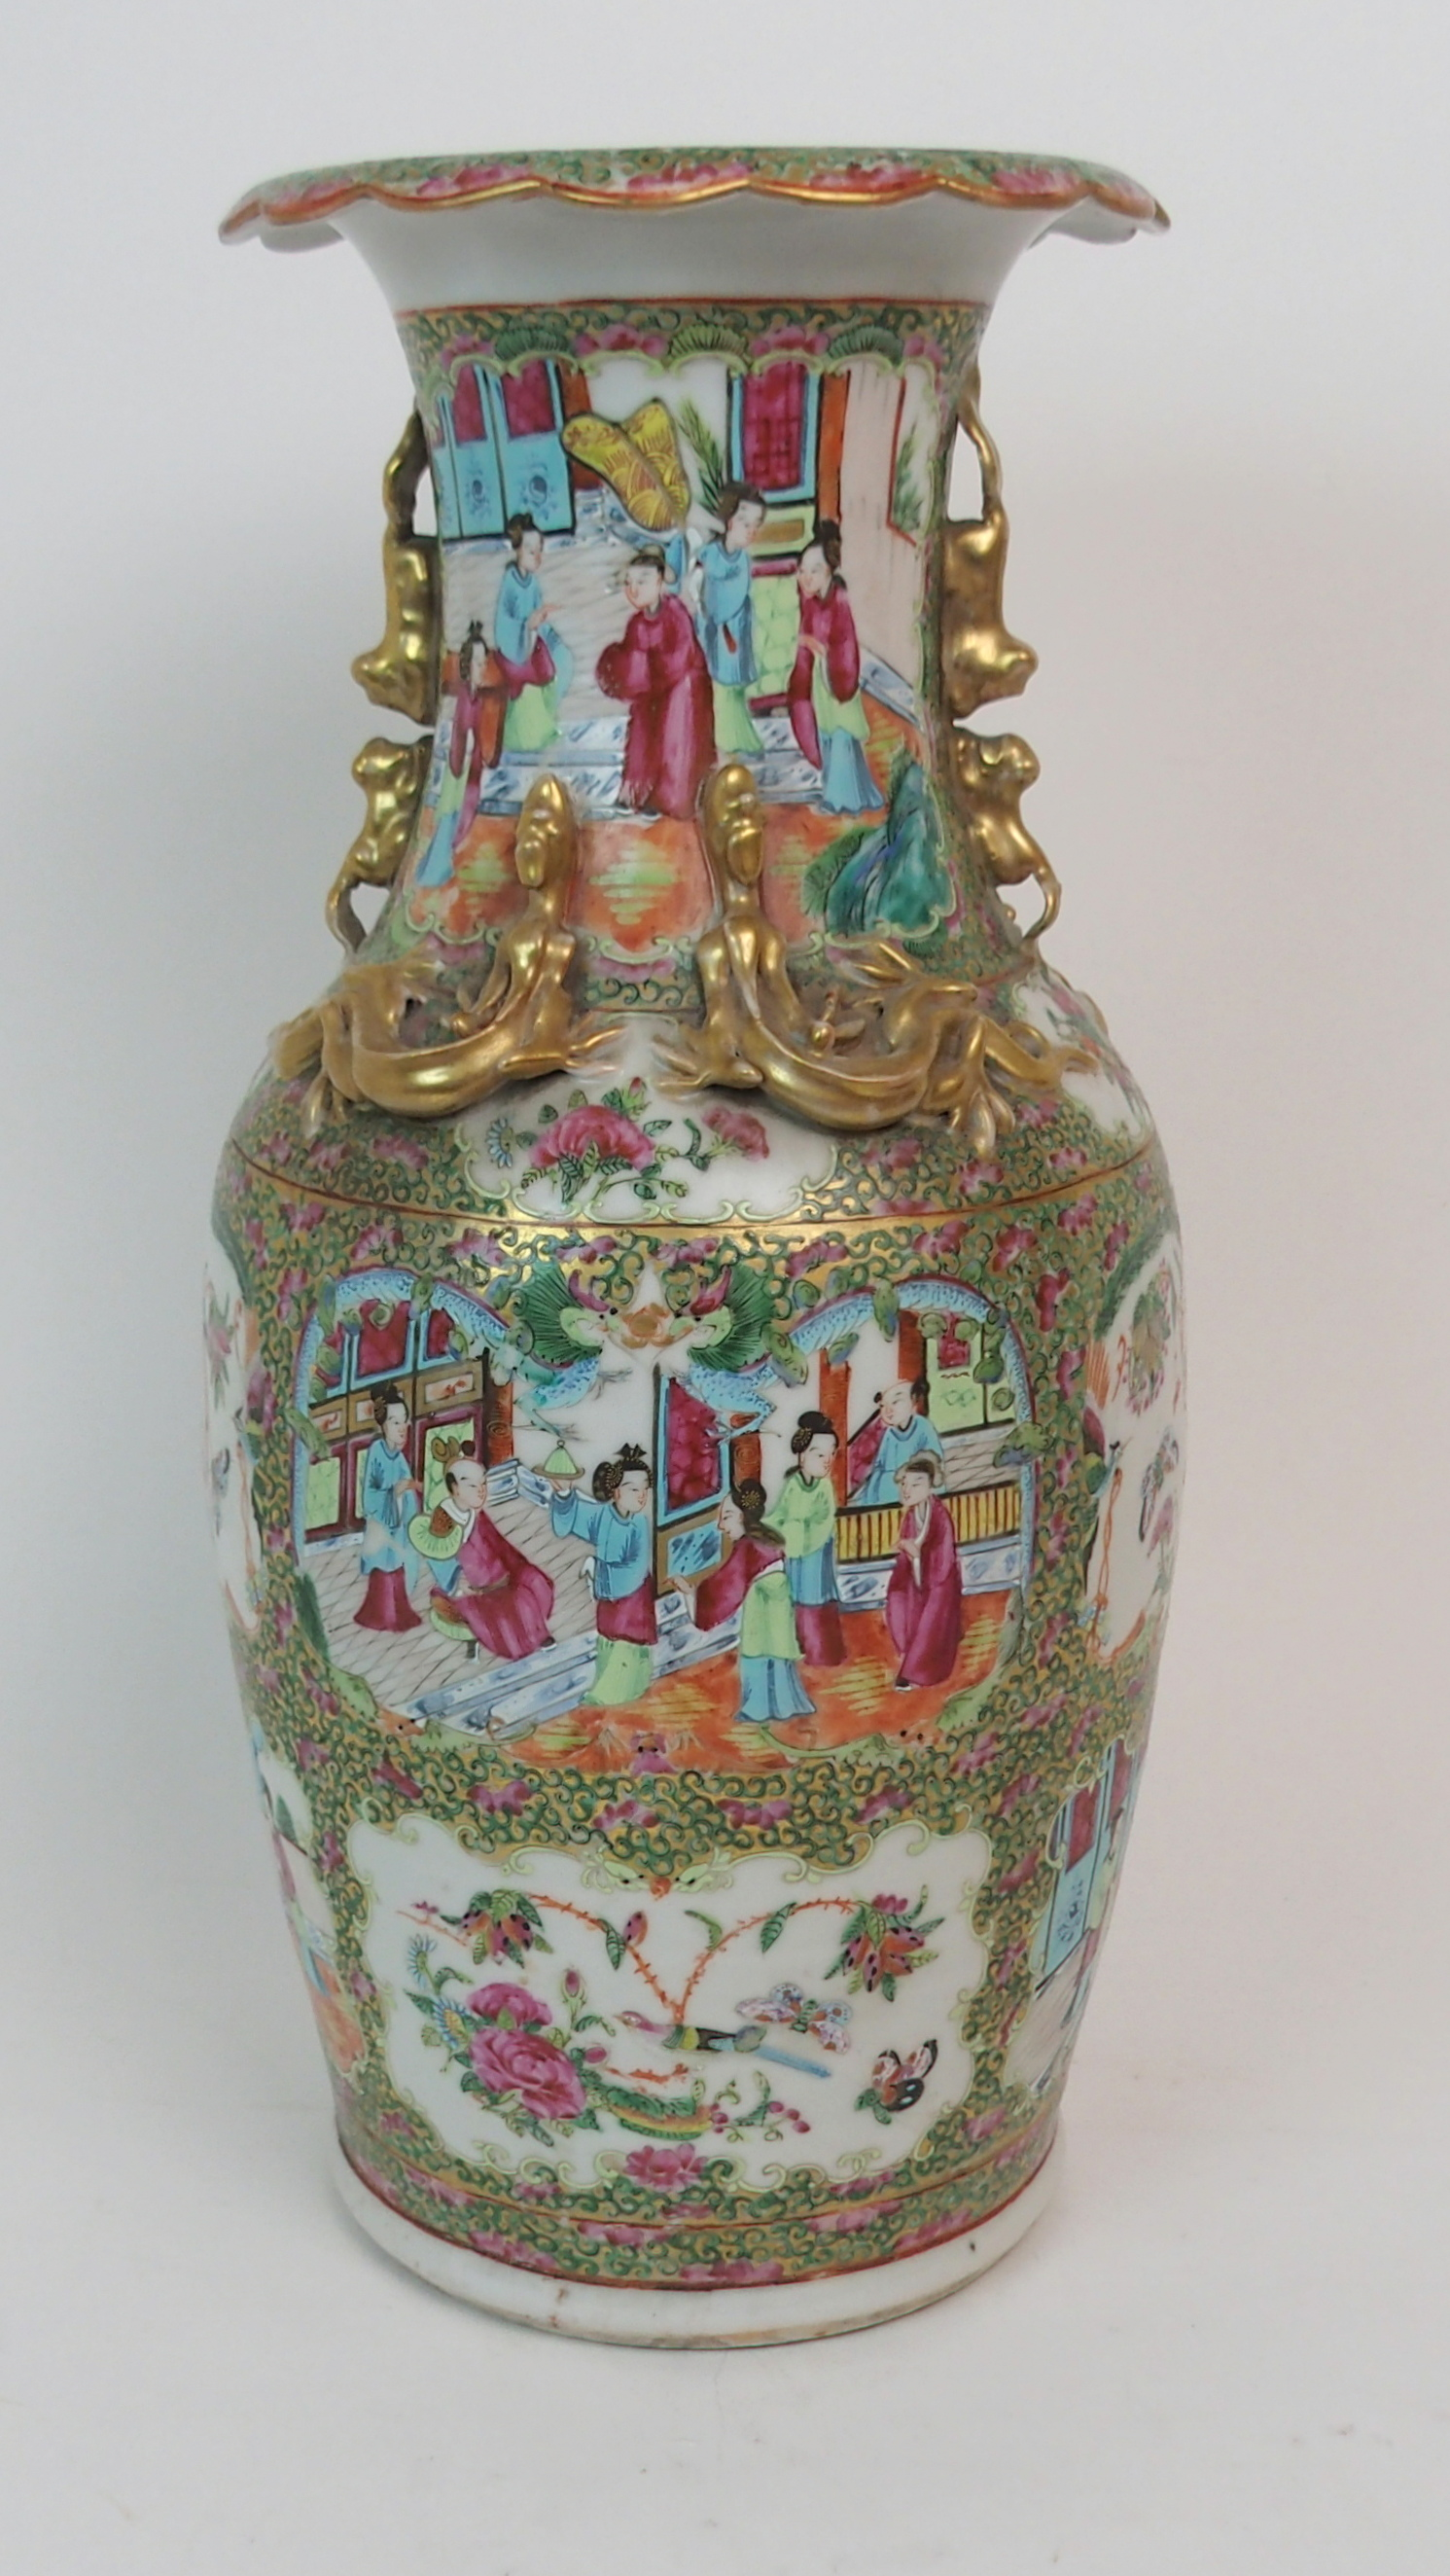 Lot 56 - A CANTONESE BALUSTER VASE painted with panels of figures on balconies, birds, flowers and insects